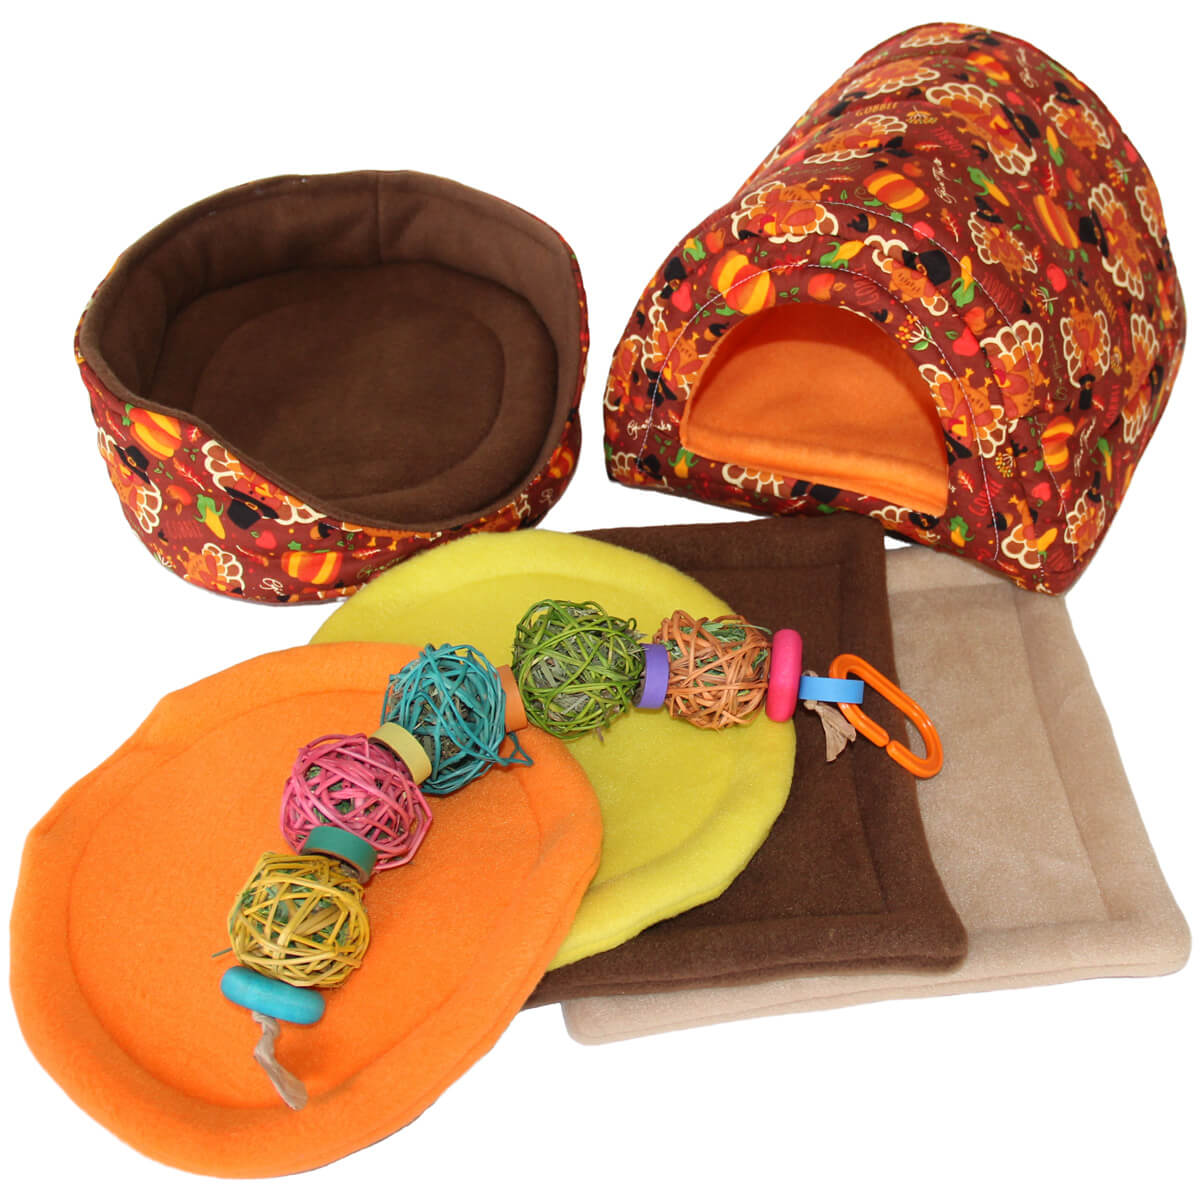 Large Turkeys Cozy and Toy Bundle for Guinea Pigs and Other Small Animals